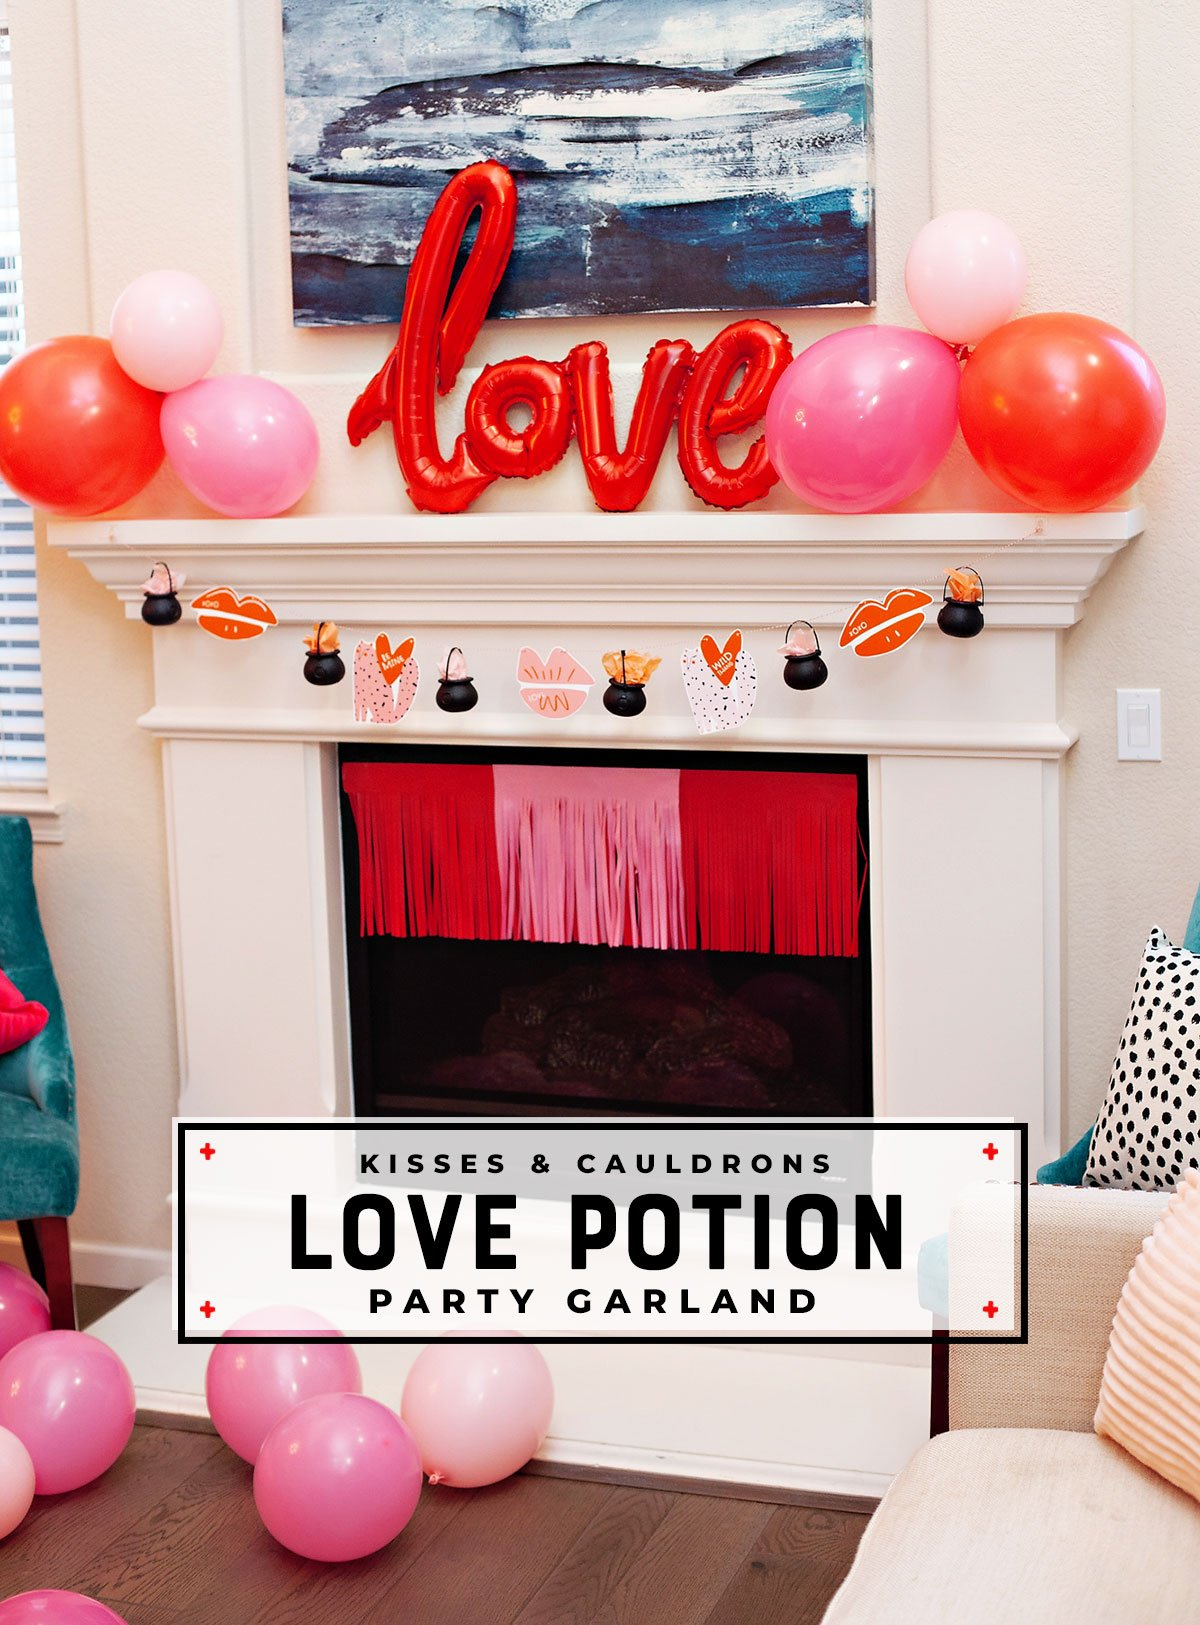 Valentine's Day party garland